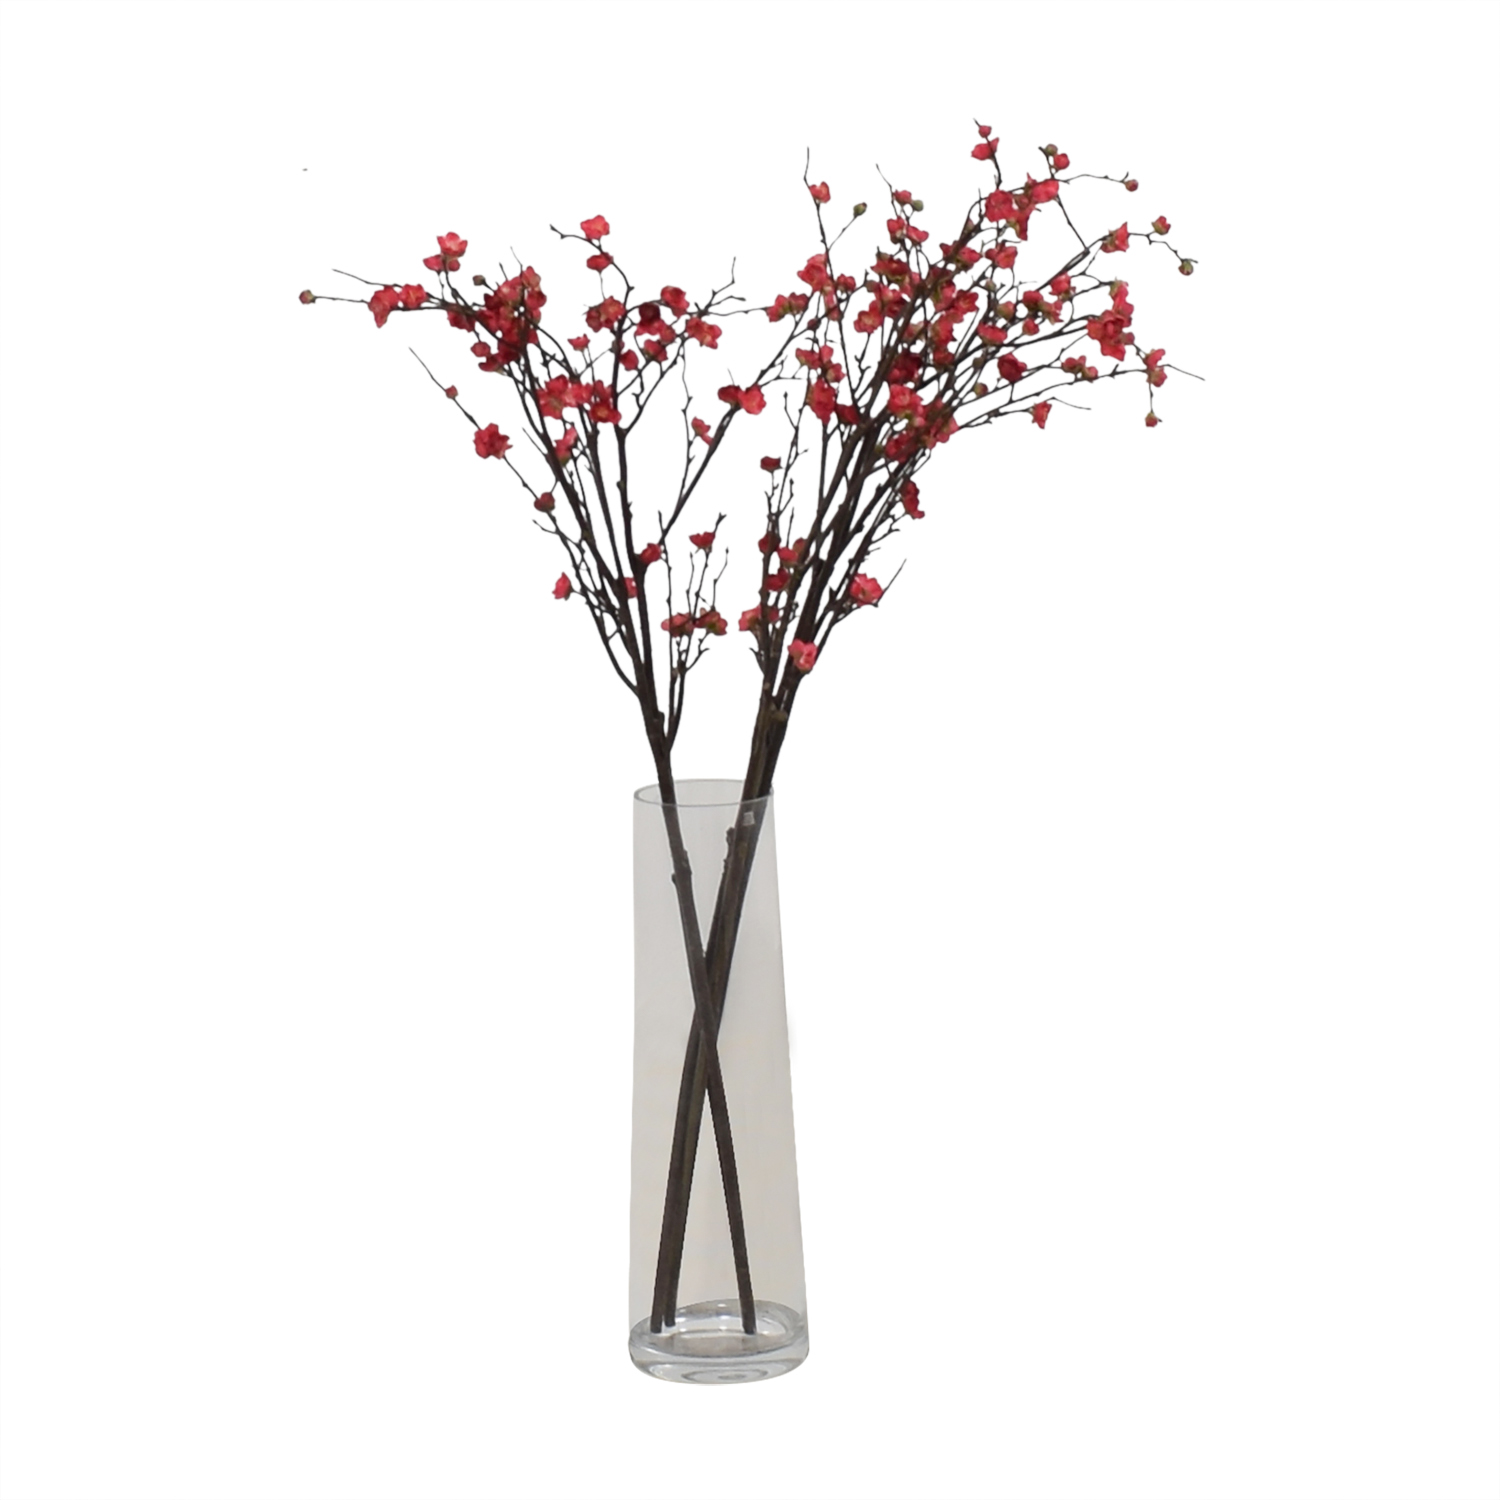 Crate & Barrel Crate & Barrel Glass Vase with Blossom Stems used